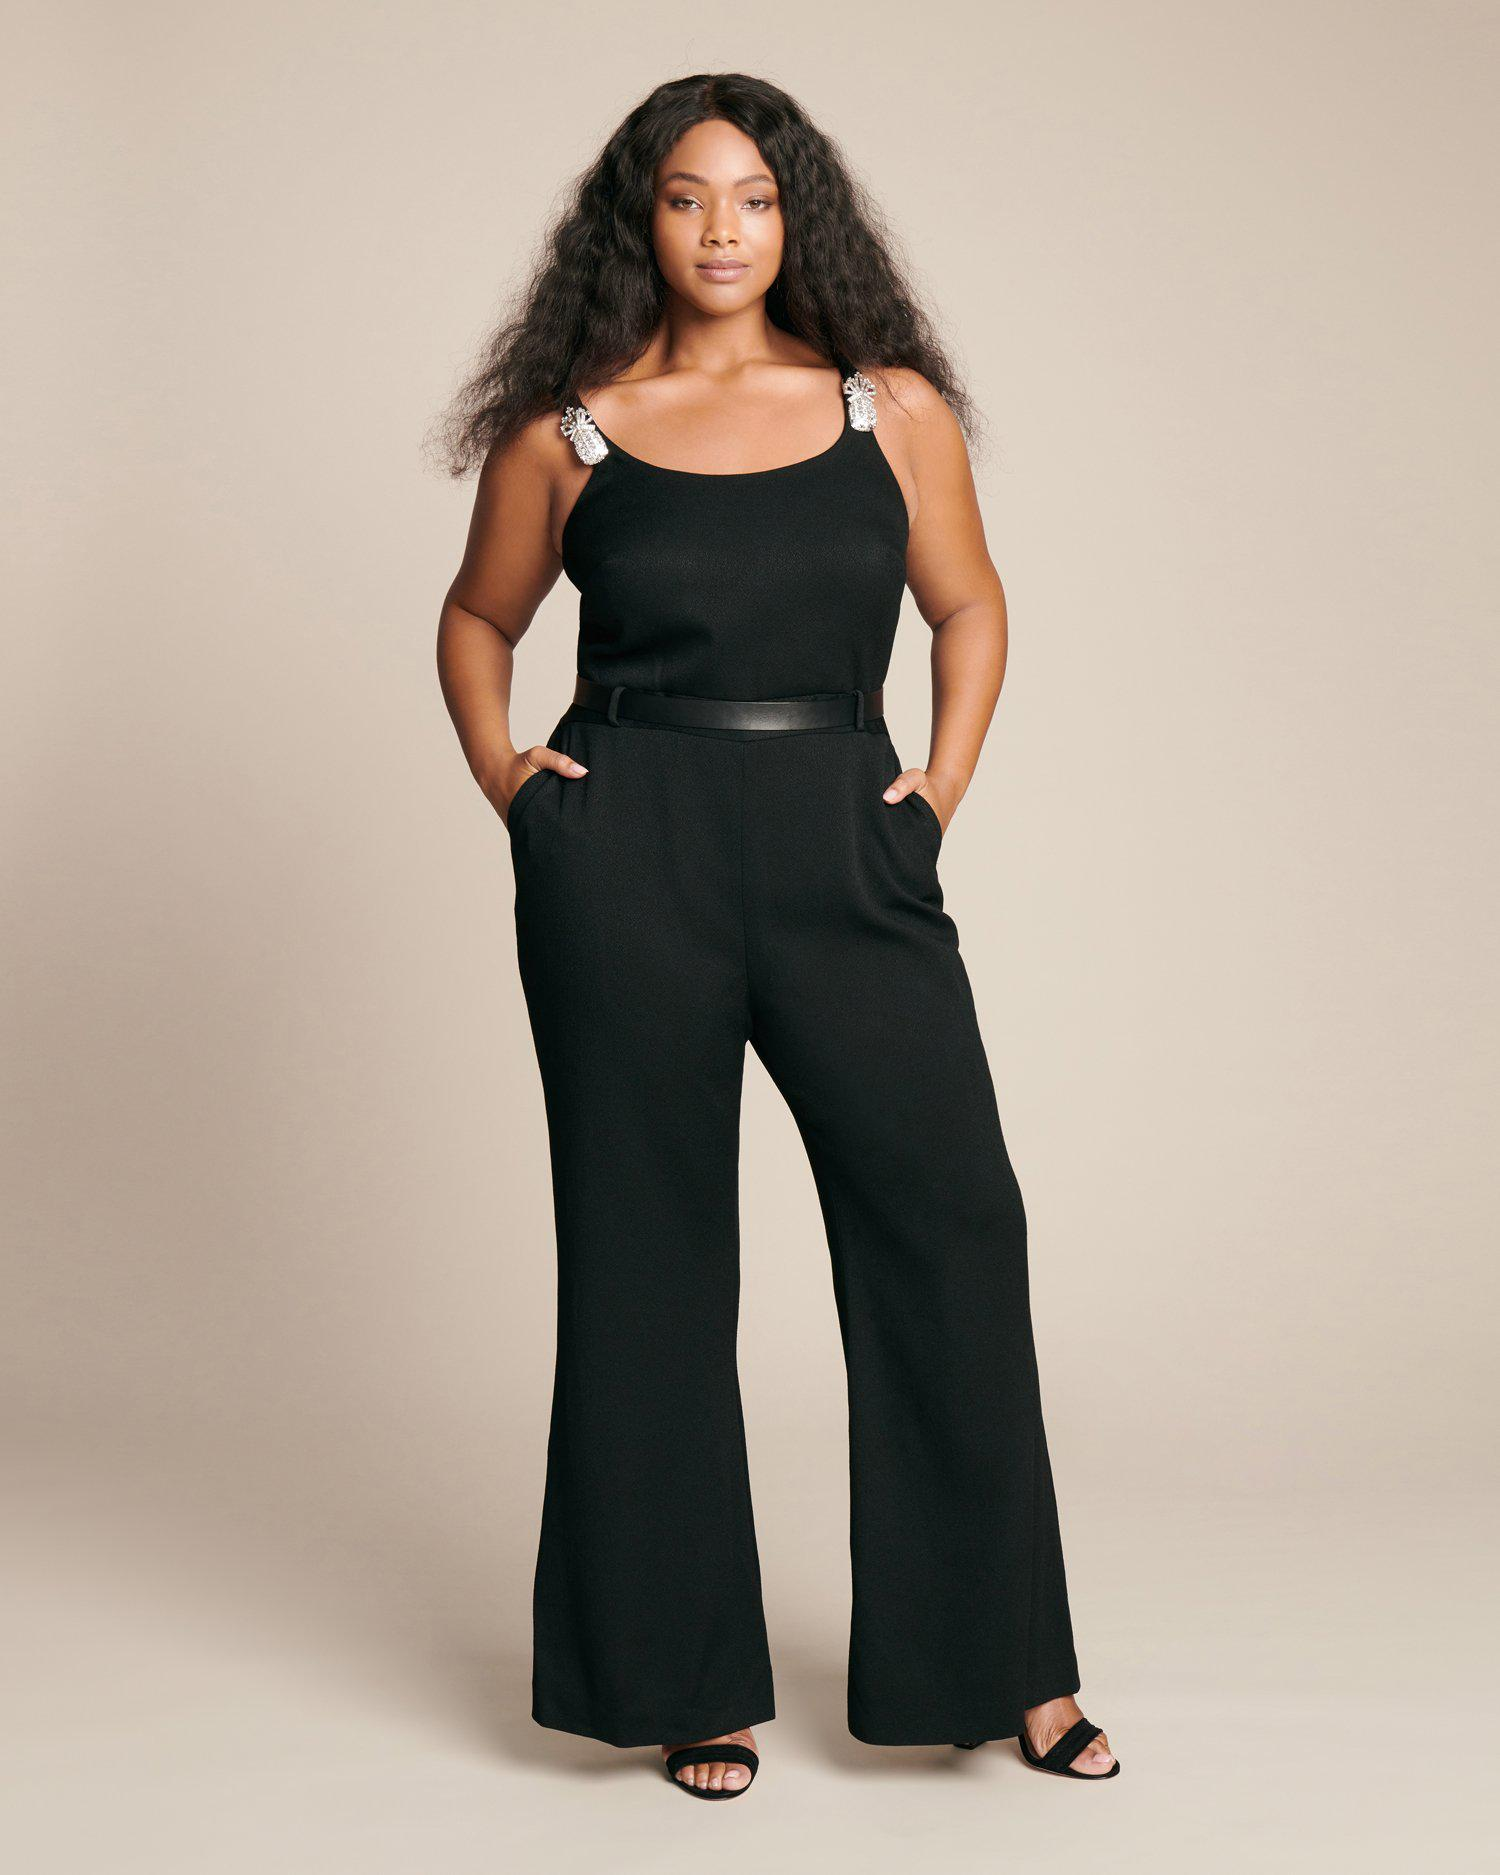 8e3982b272f Lyst - Brandon Maxwell Pineapple Crystal Crepe Jumpsuit in Black